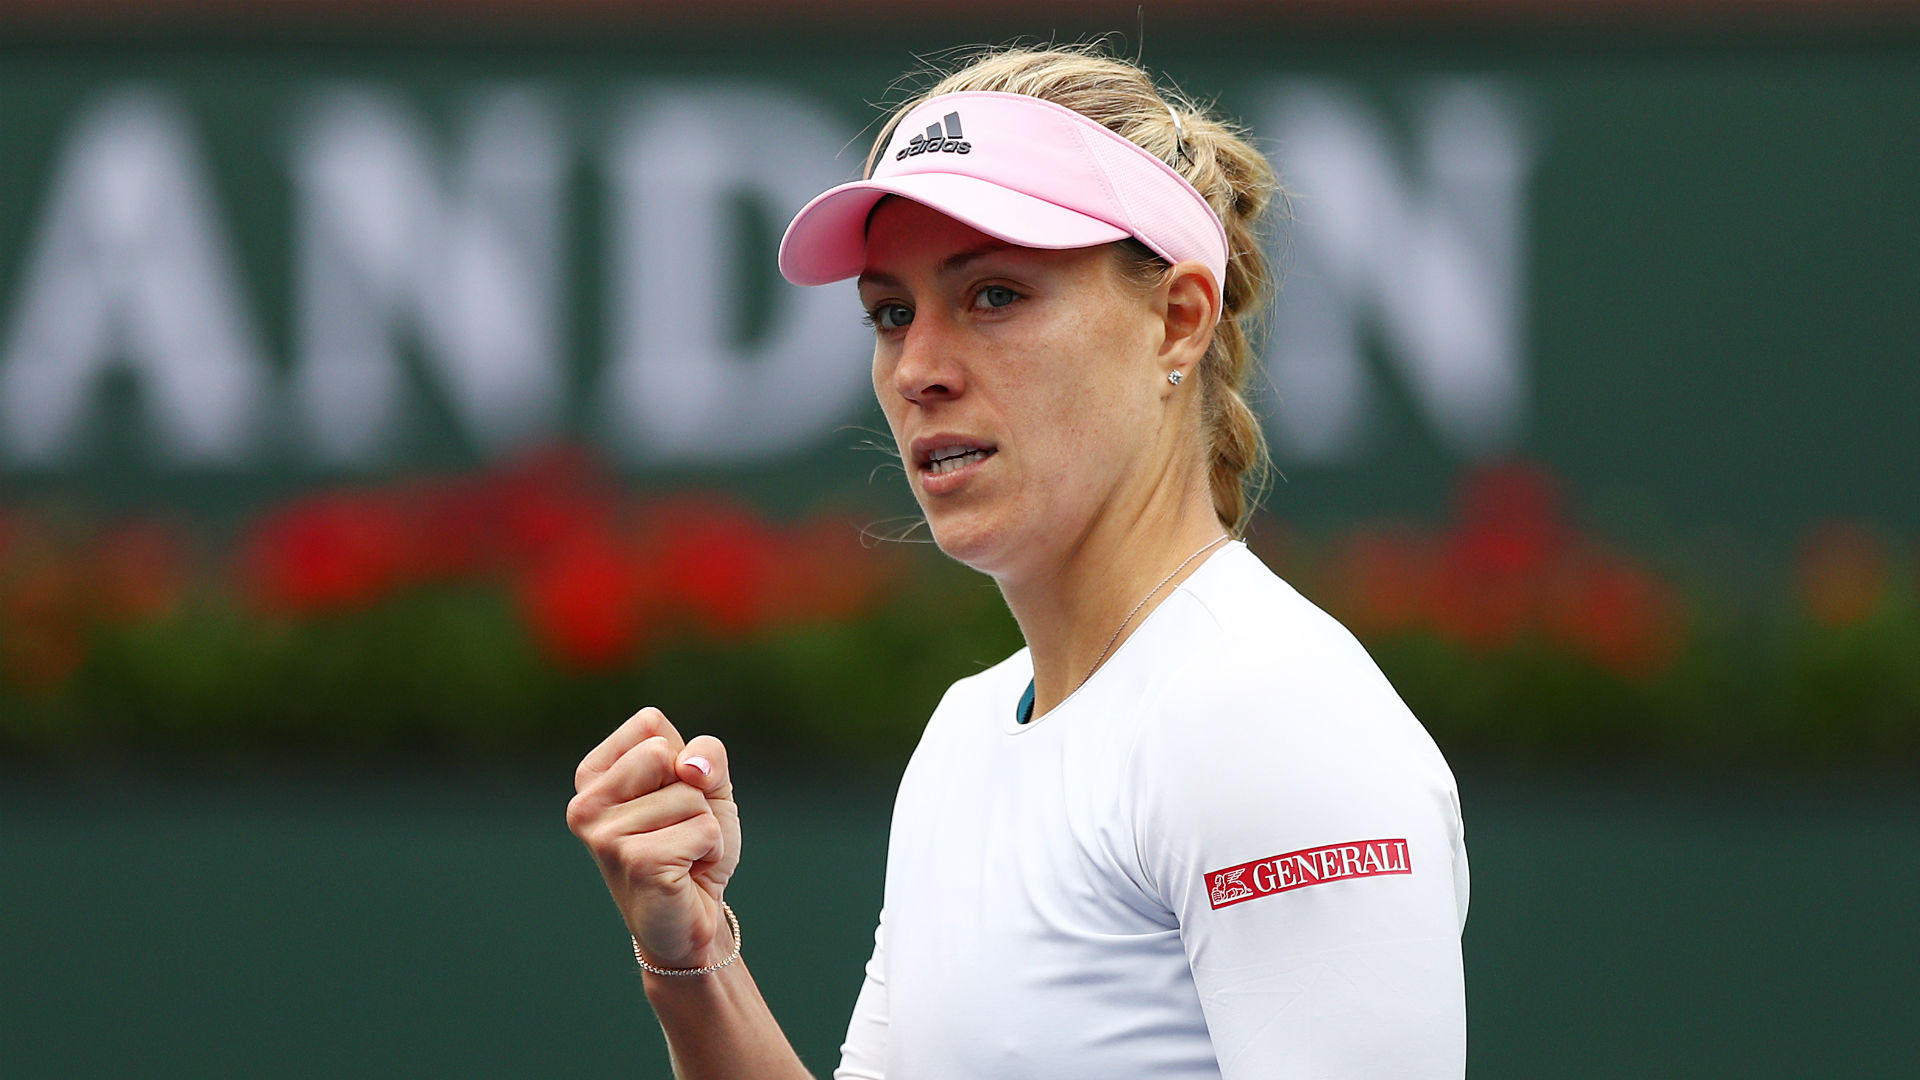 Maria Sharapova made a second-round exit from her comeback tournament as Wimbledon champion Angelique Kerber proved far too strong.